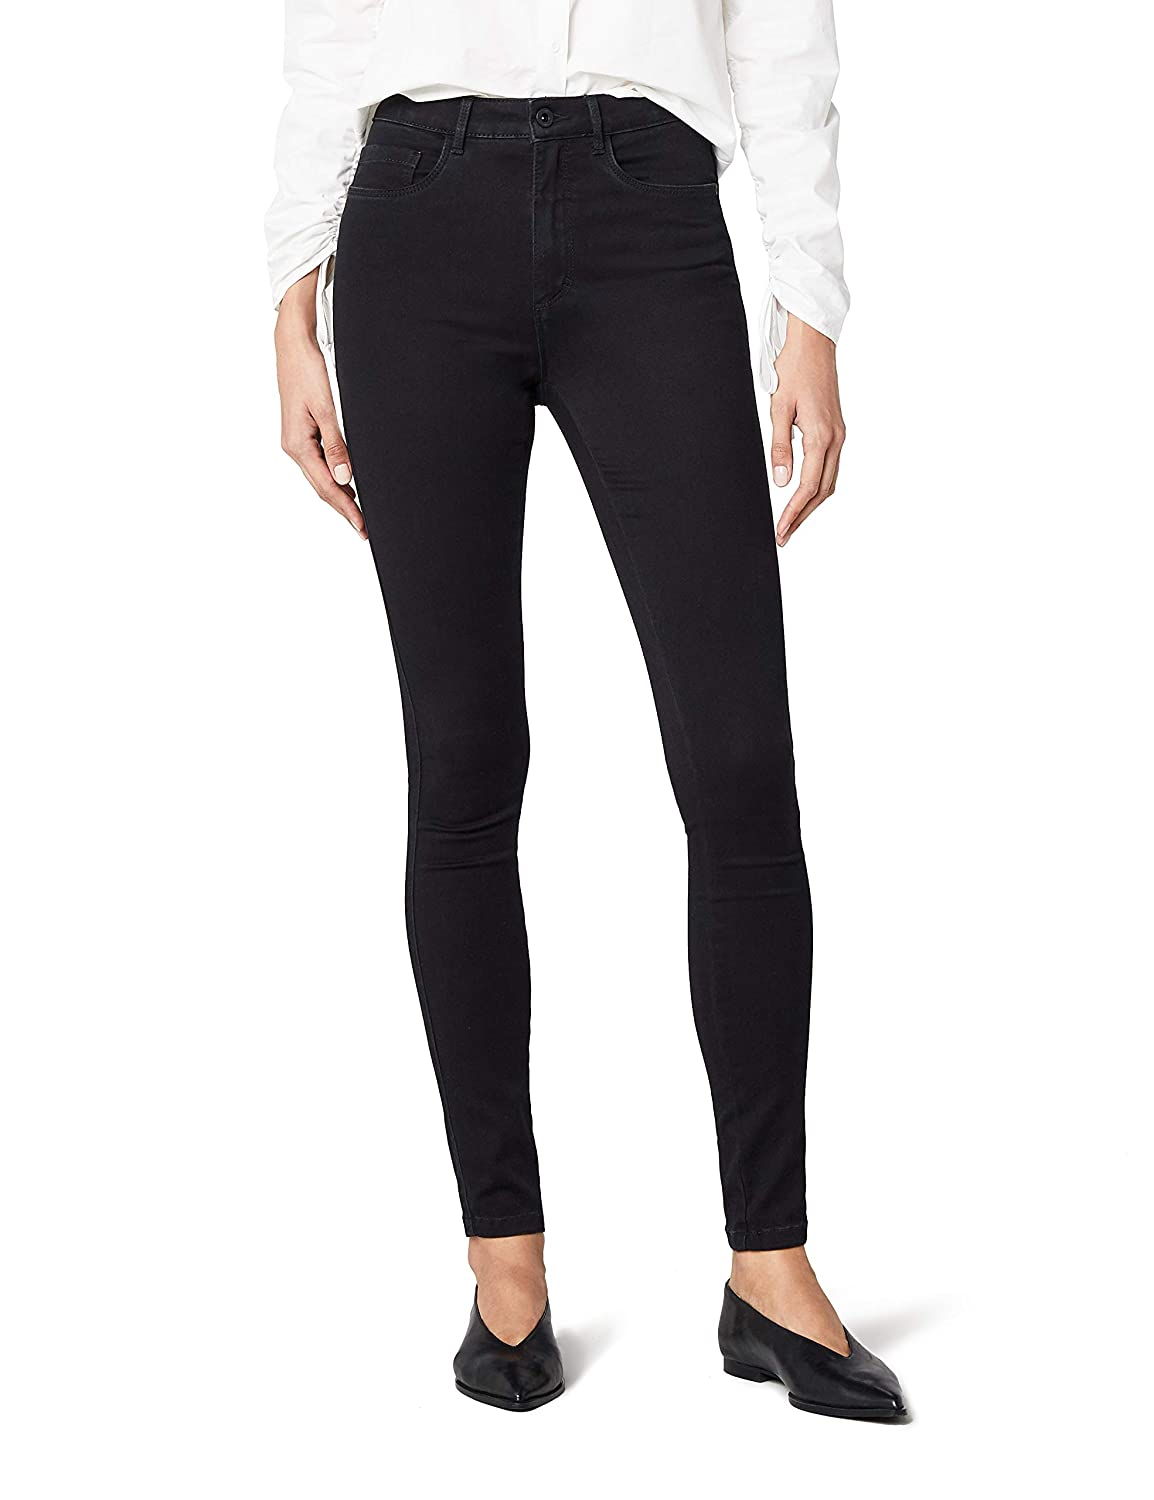 TALLA S (Talla Fabricante:32). Only Onlroyal High Sk Jeans Pim600 Noos, Jeans Skinny para Mujer